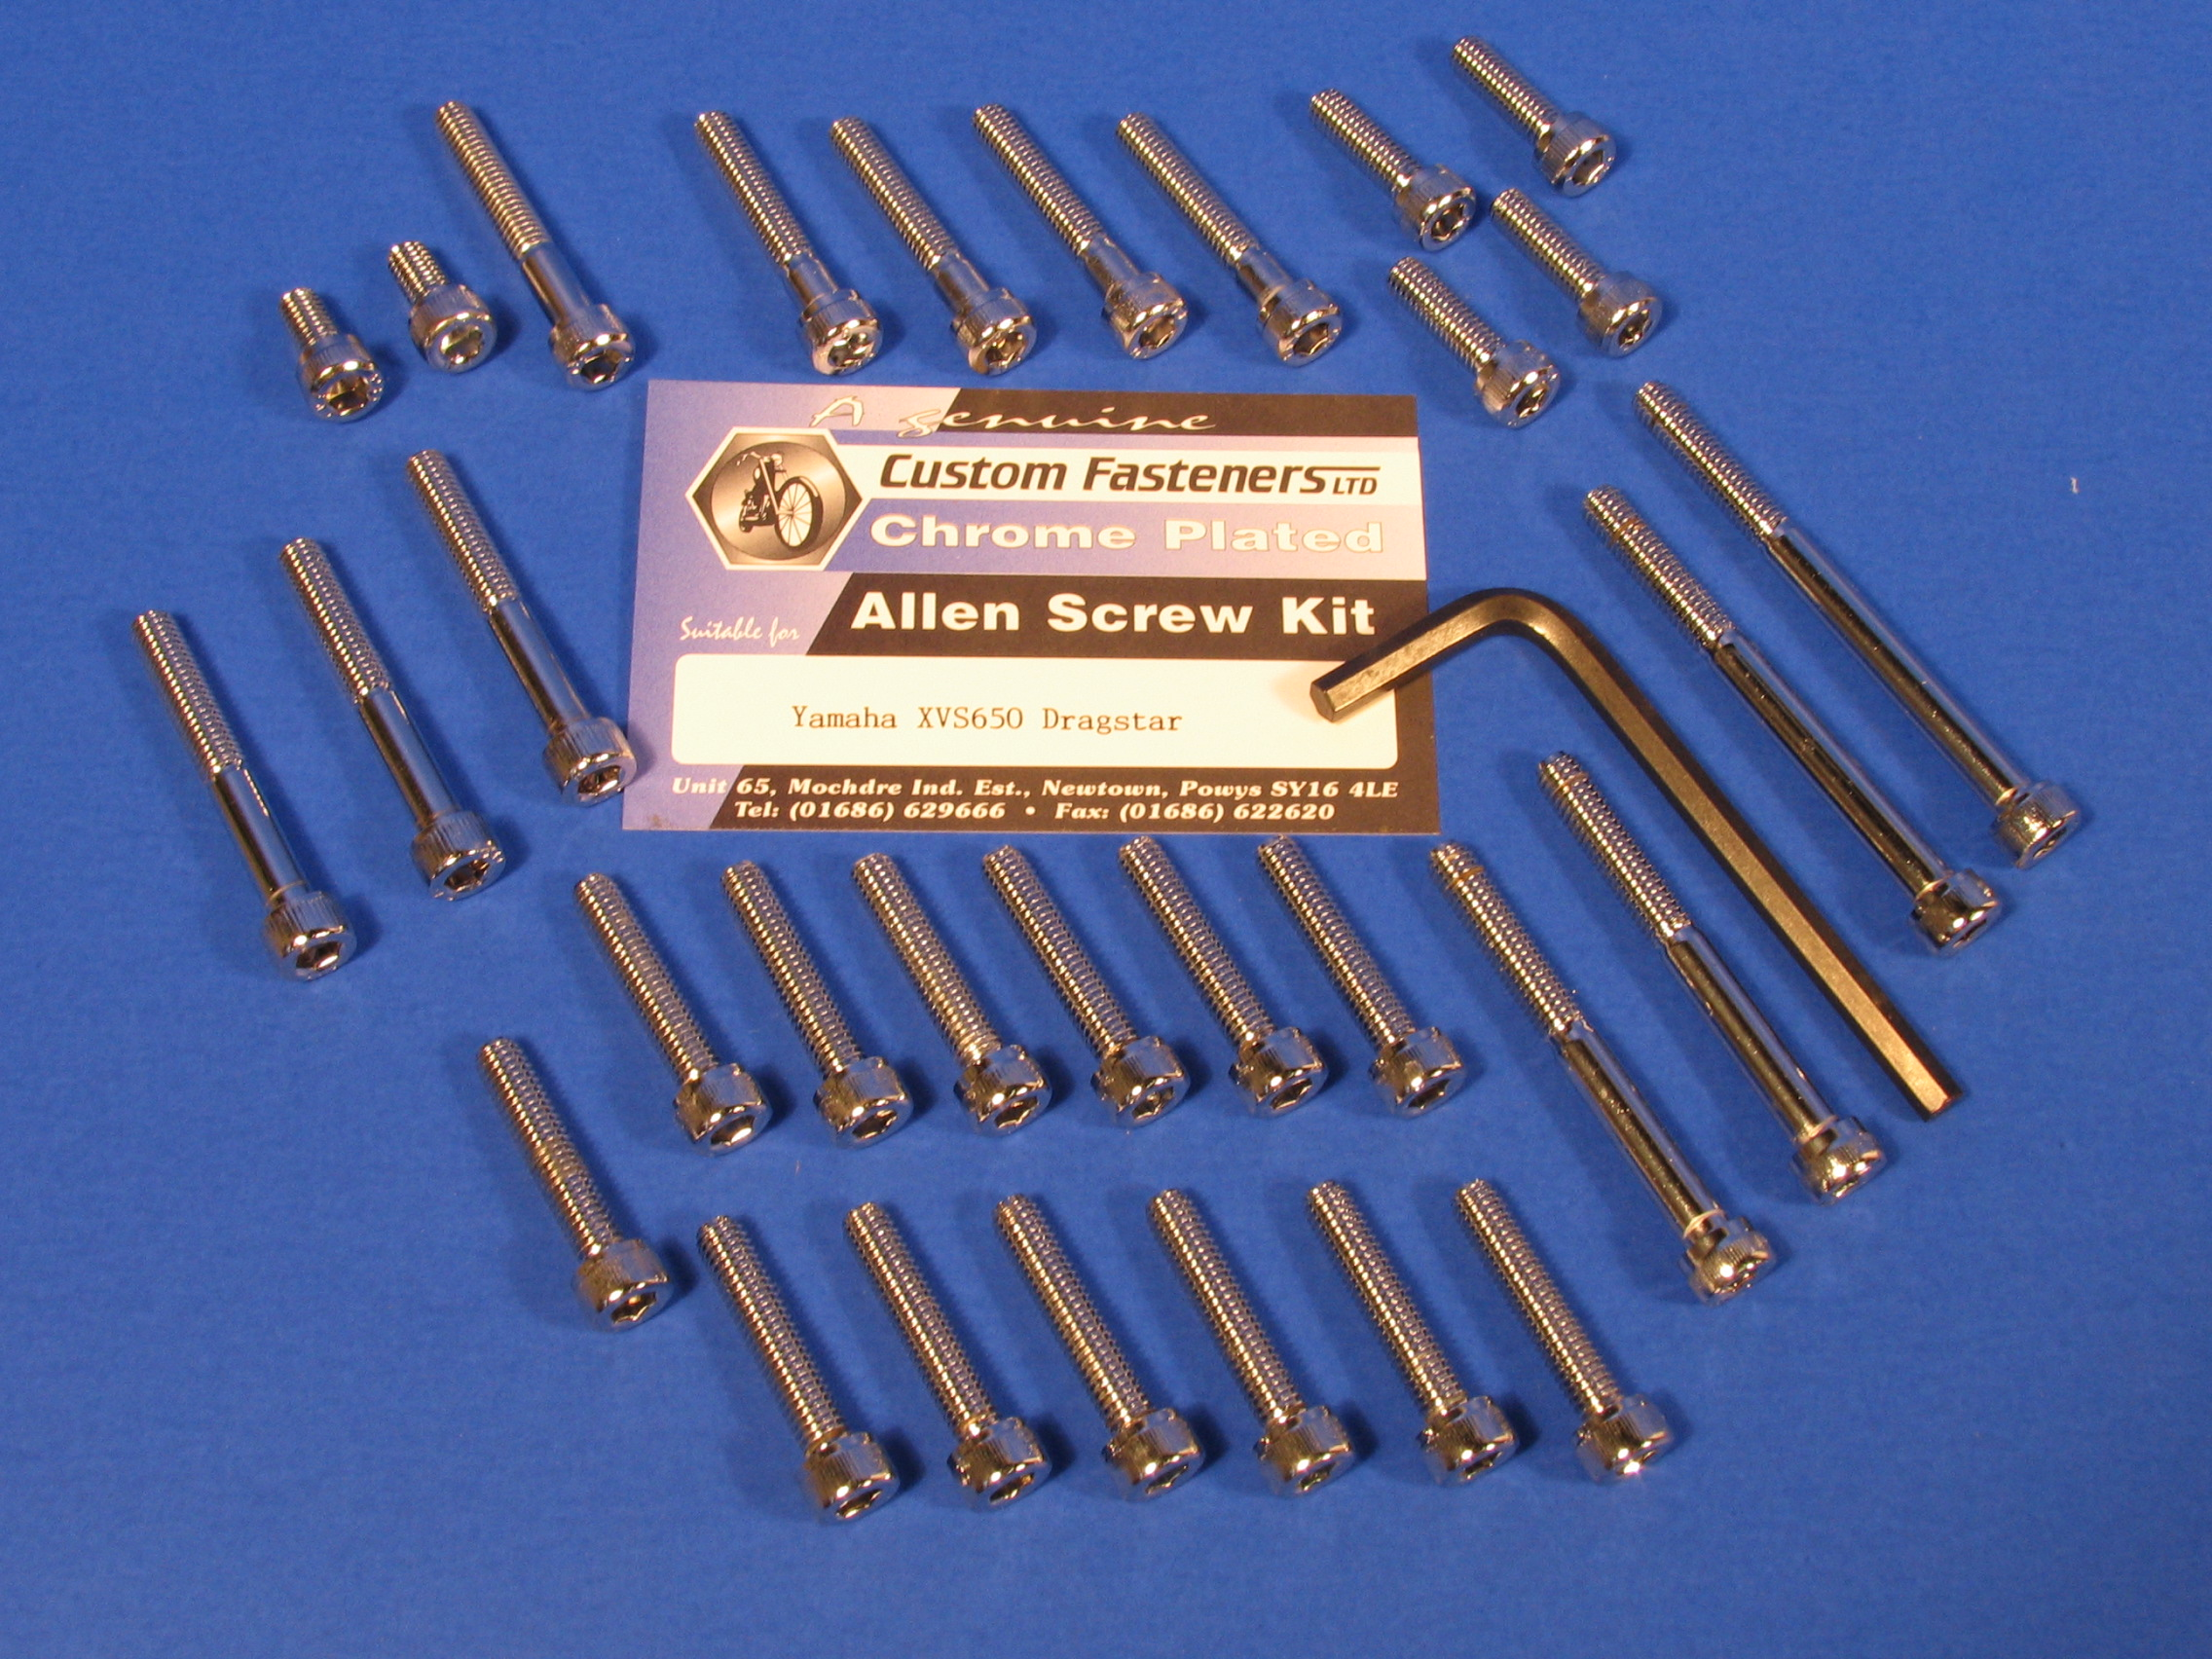 MZ Allen Screw Kits